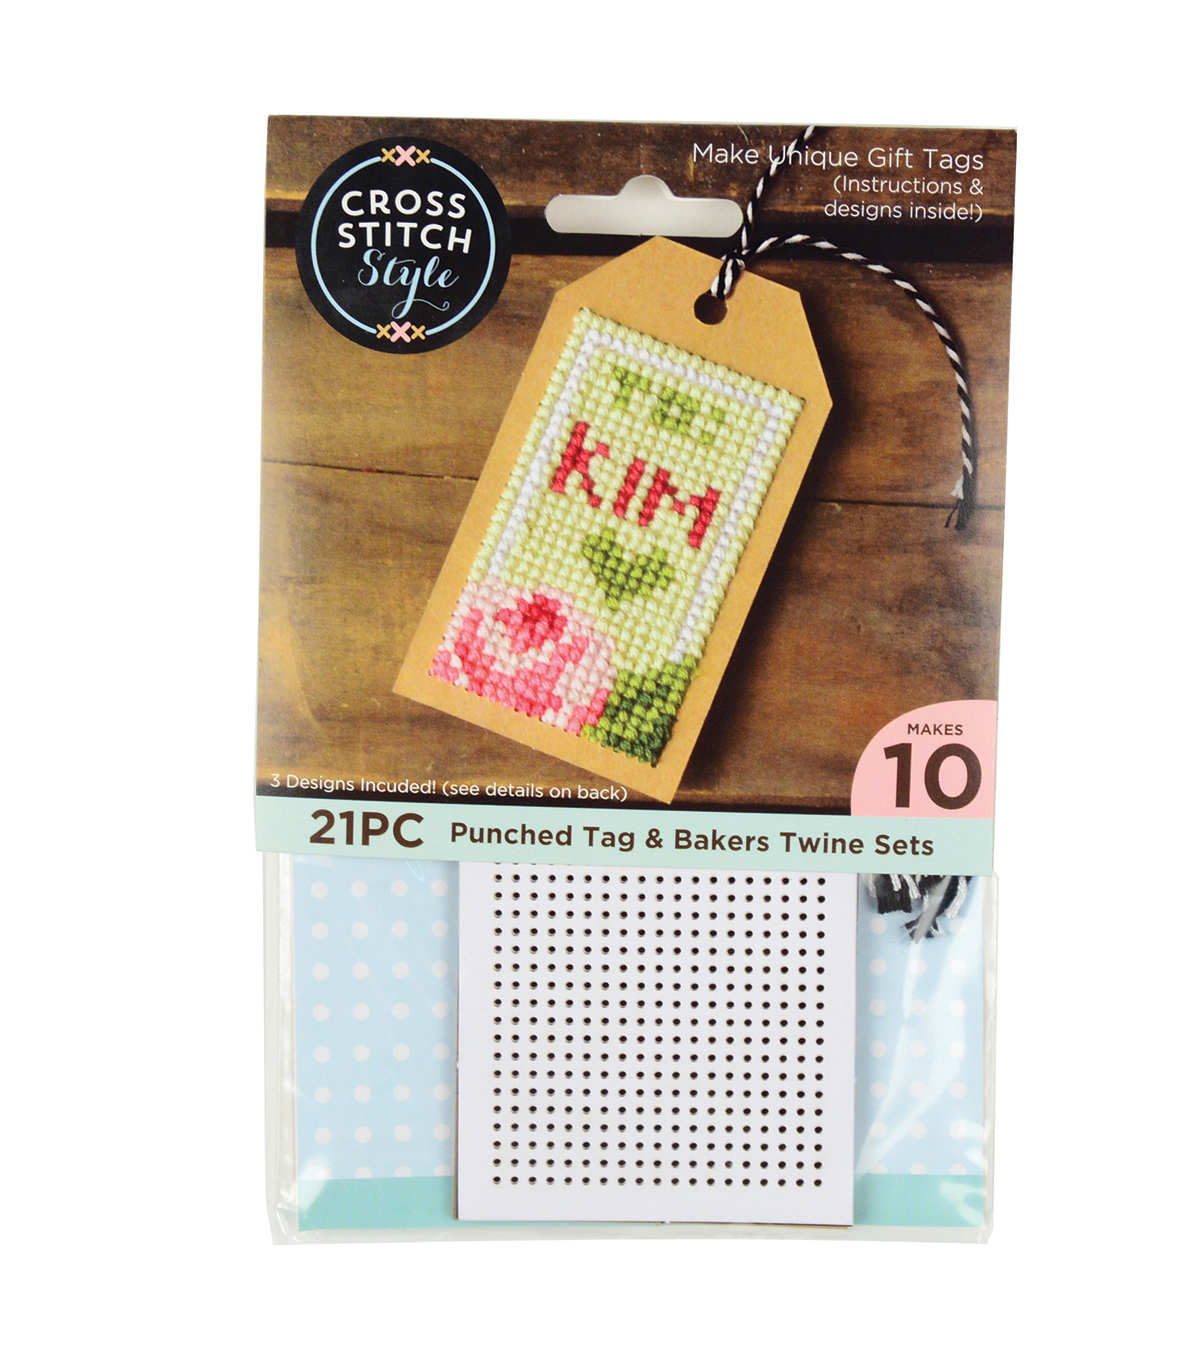 Cross Stitch Style Punched Tag & Bakers Twine Sets